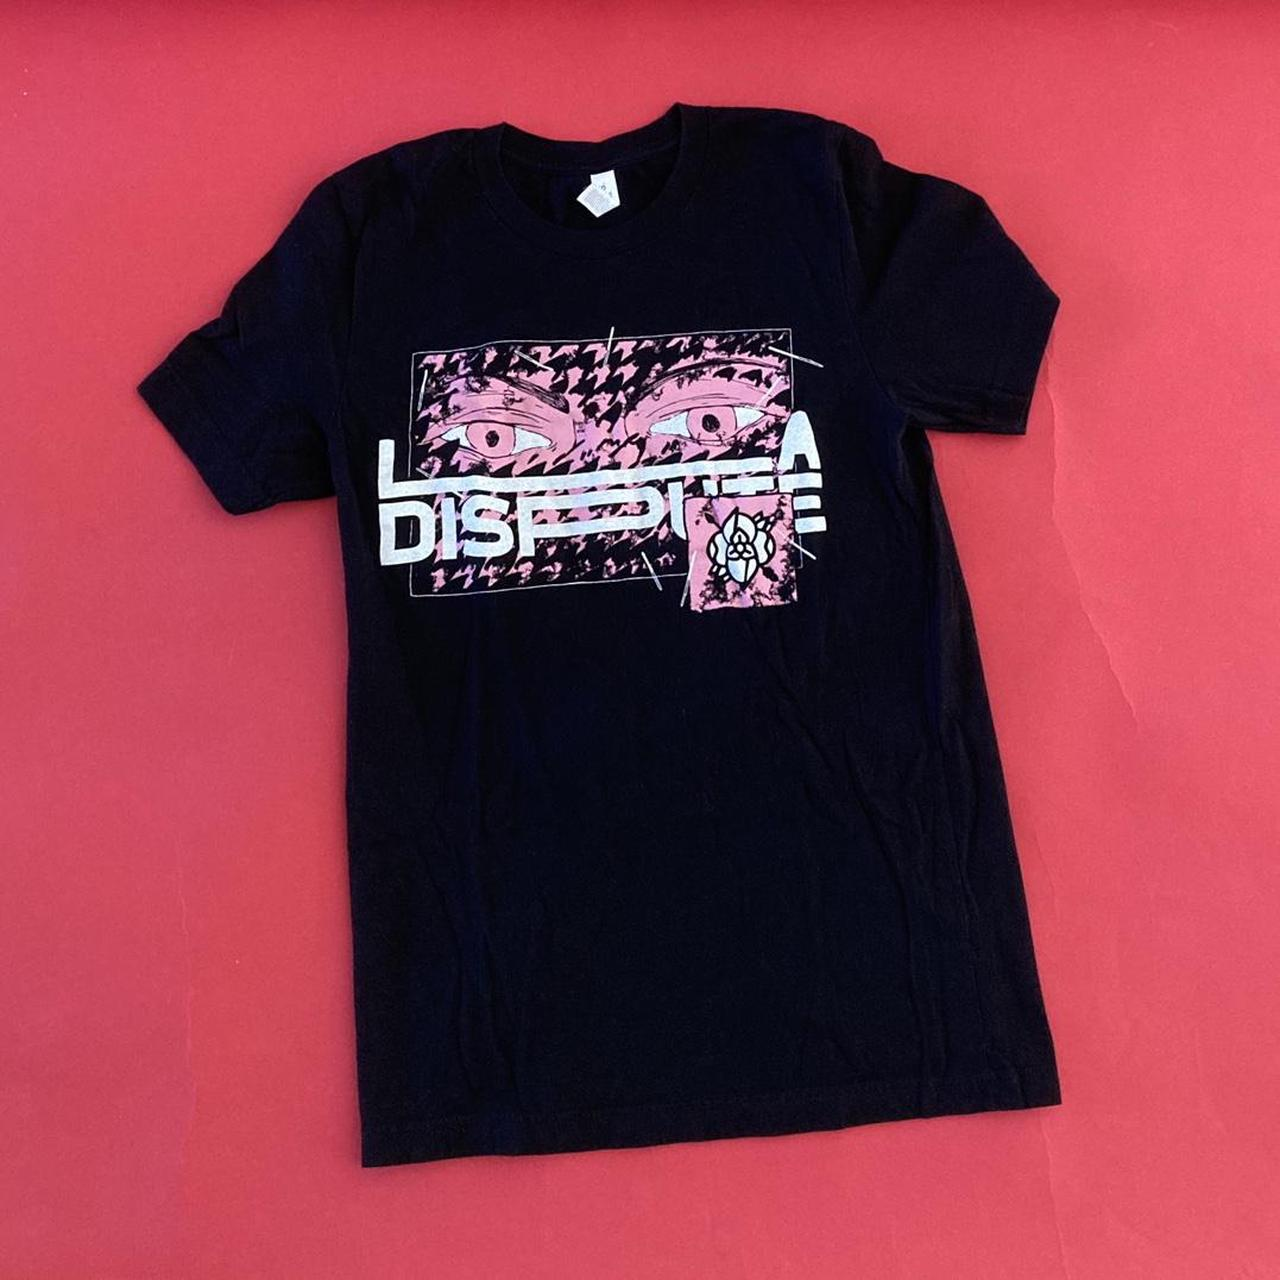 Product Image 1 - La Dispute shirt from their